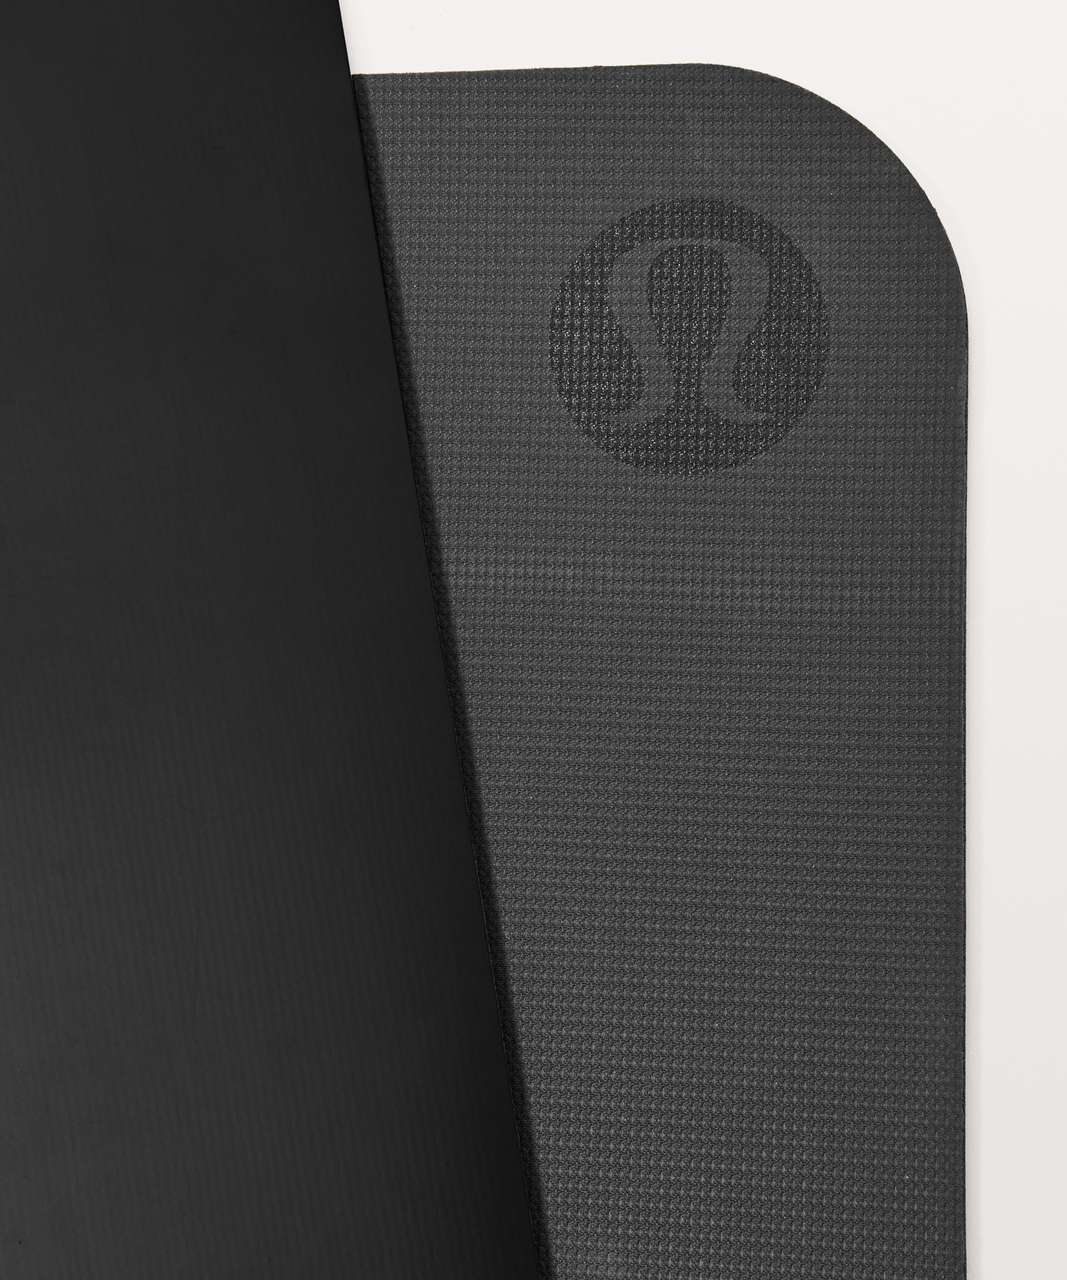 Lululemon The Reversible Mat 5mm *20Y Collection - 20Y Manifesto - The Reversible 5mm Mat